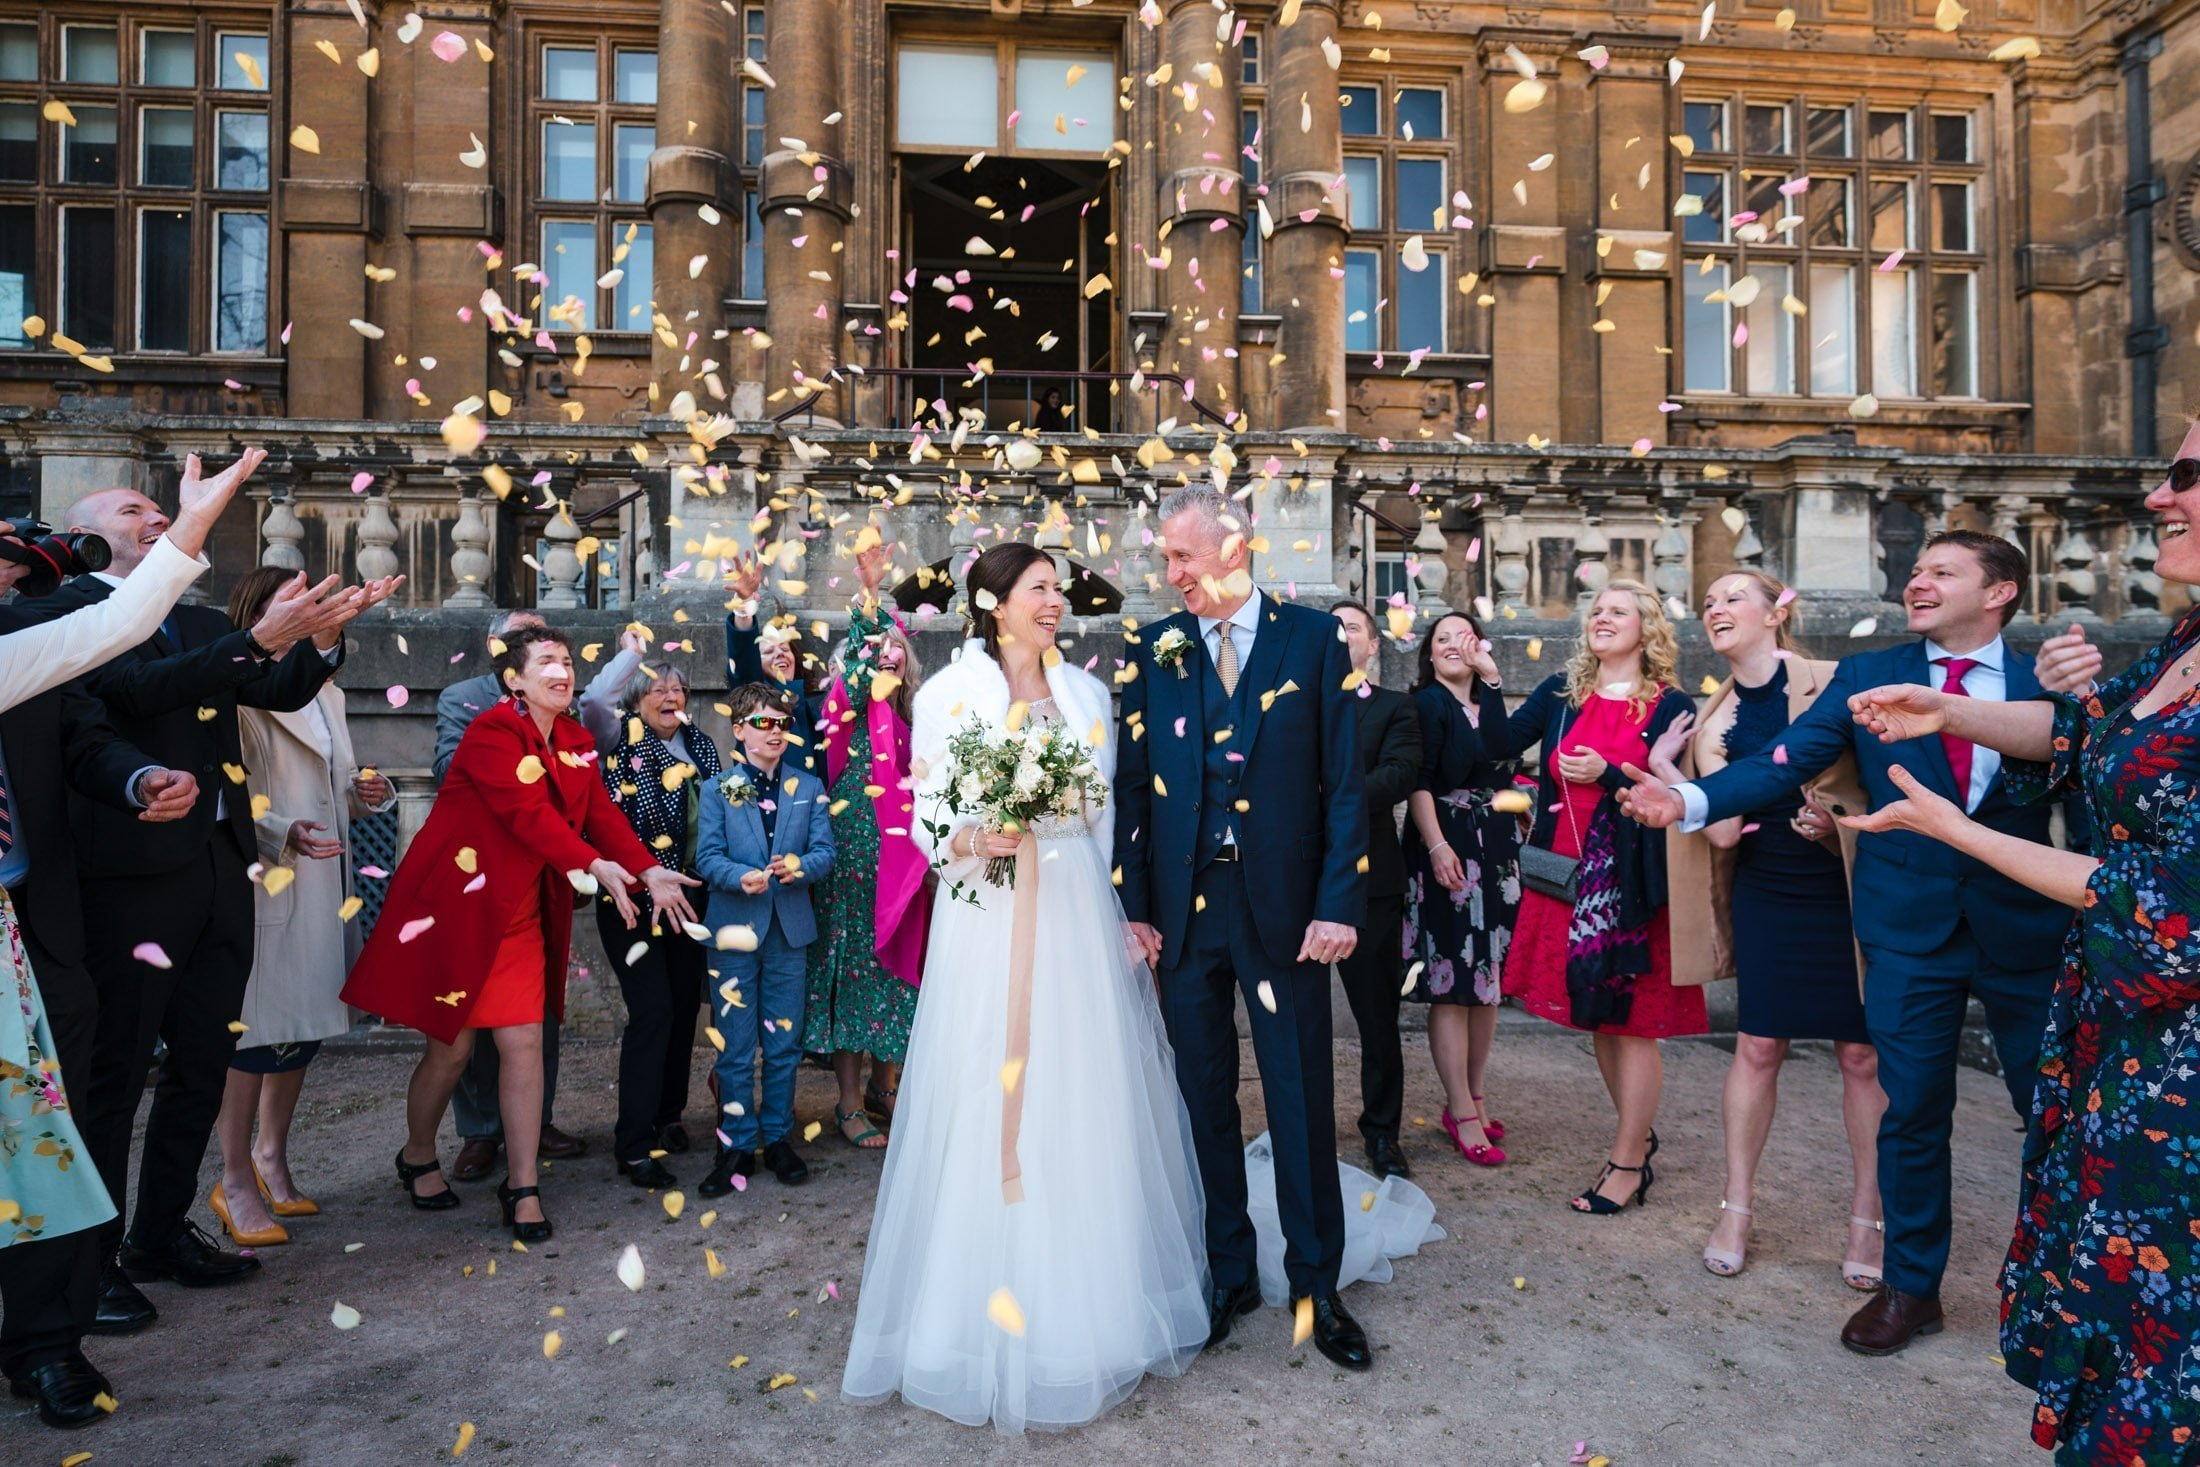 Guests throwing confetti over bride & groom outside Wollaton Hall in Nottingham